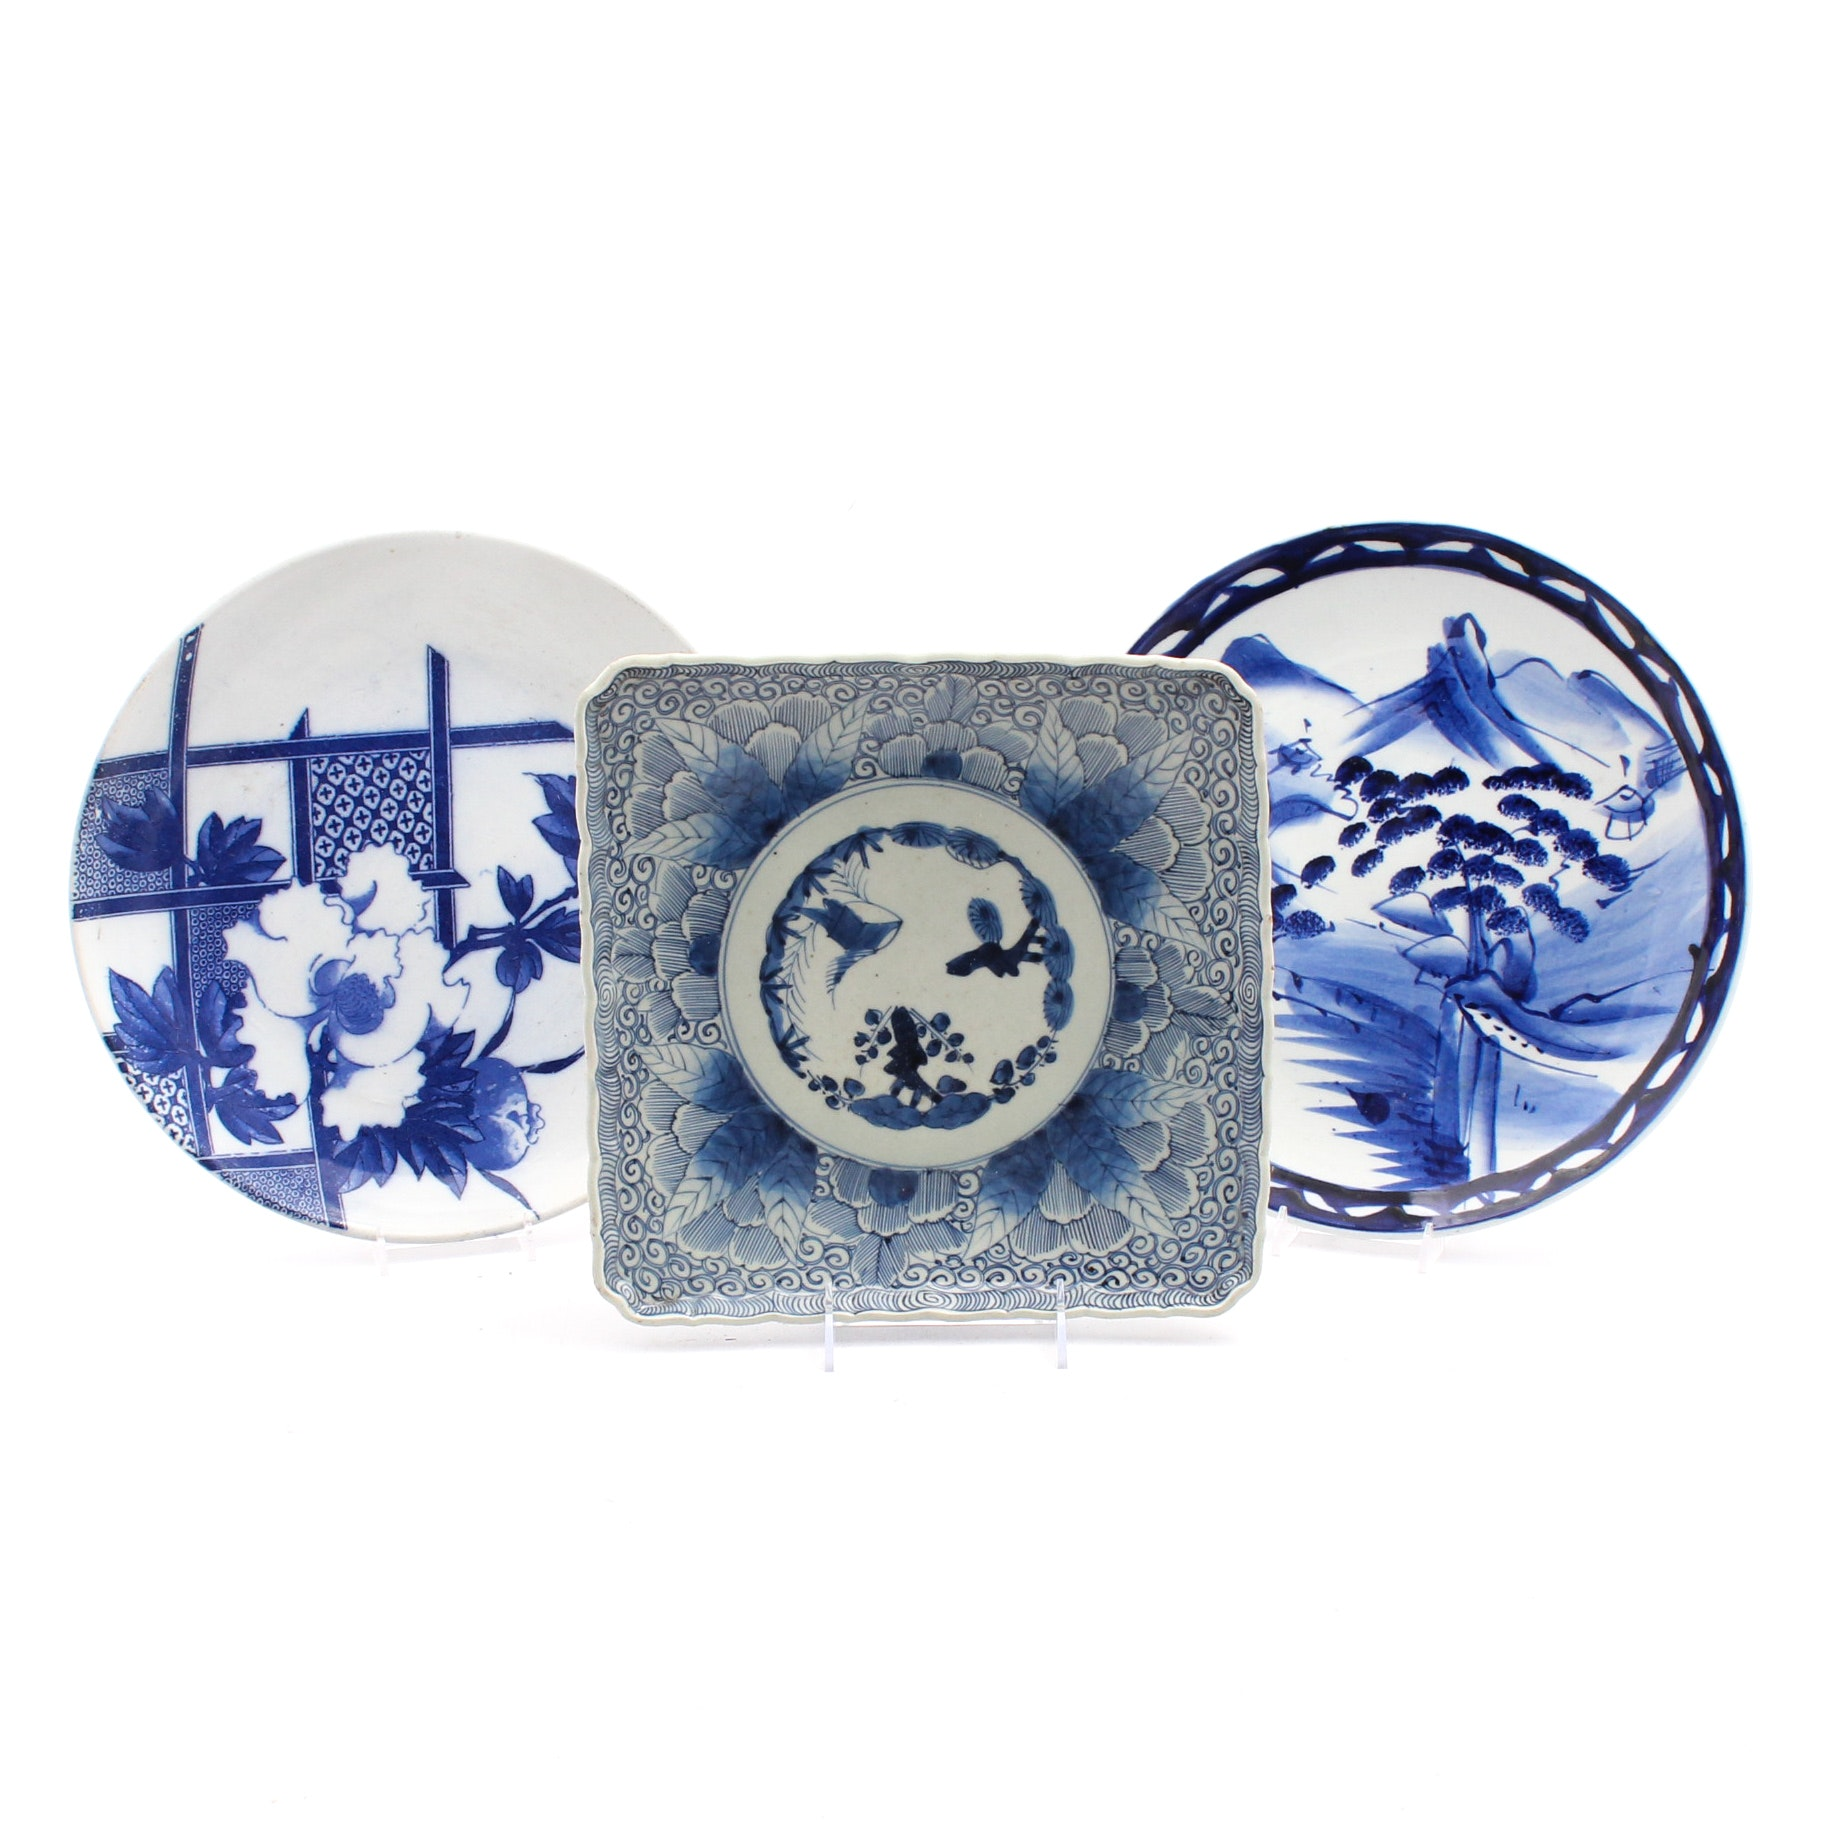 Japanese Meiji Period Blue and White Porcelain Chargers